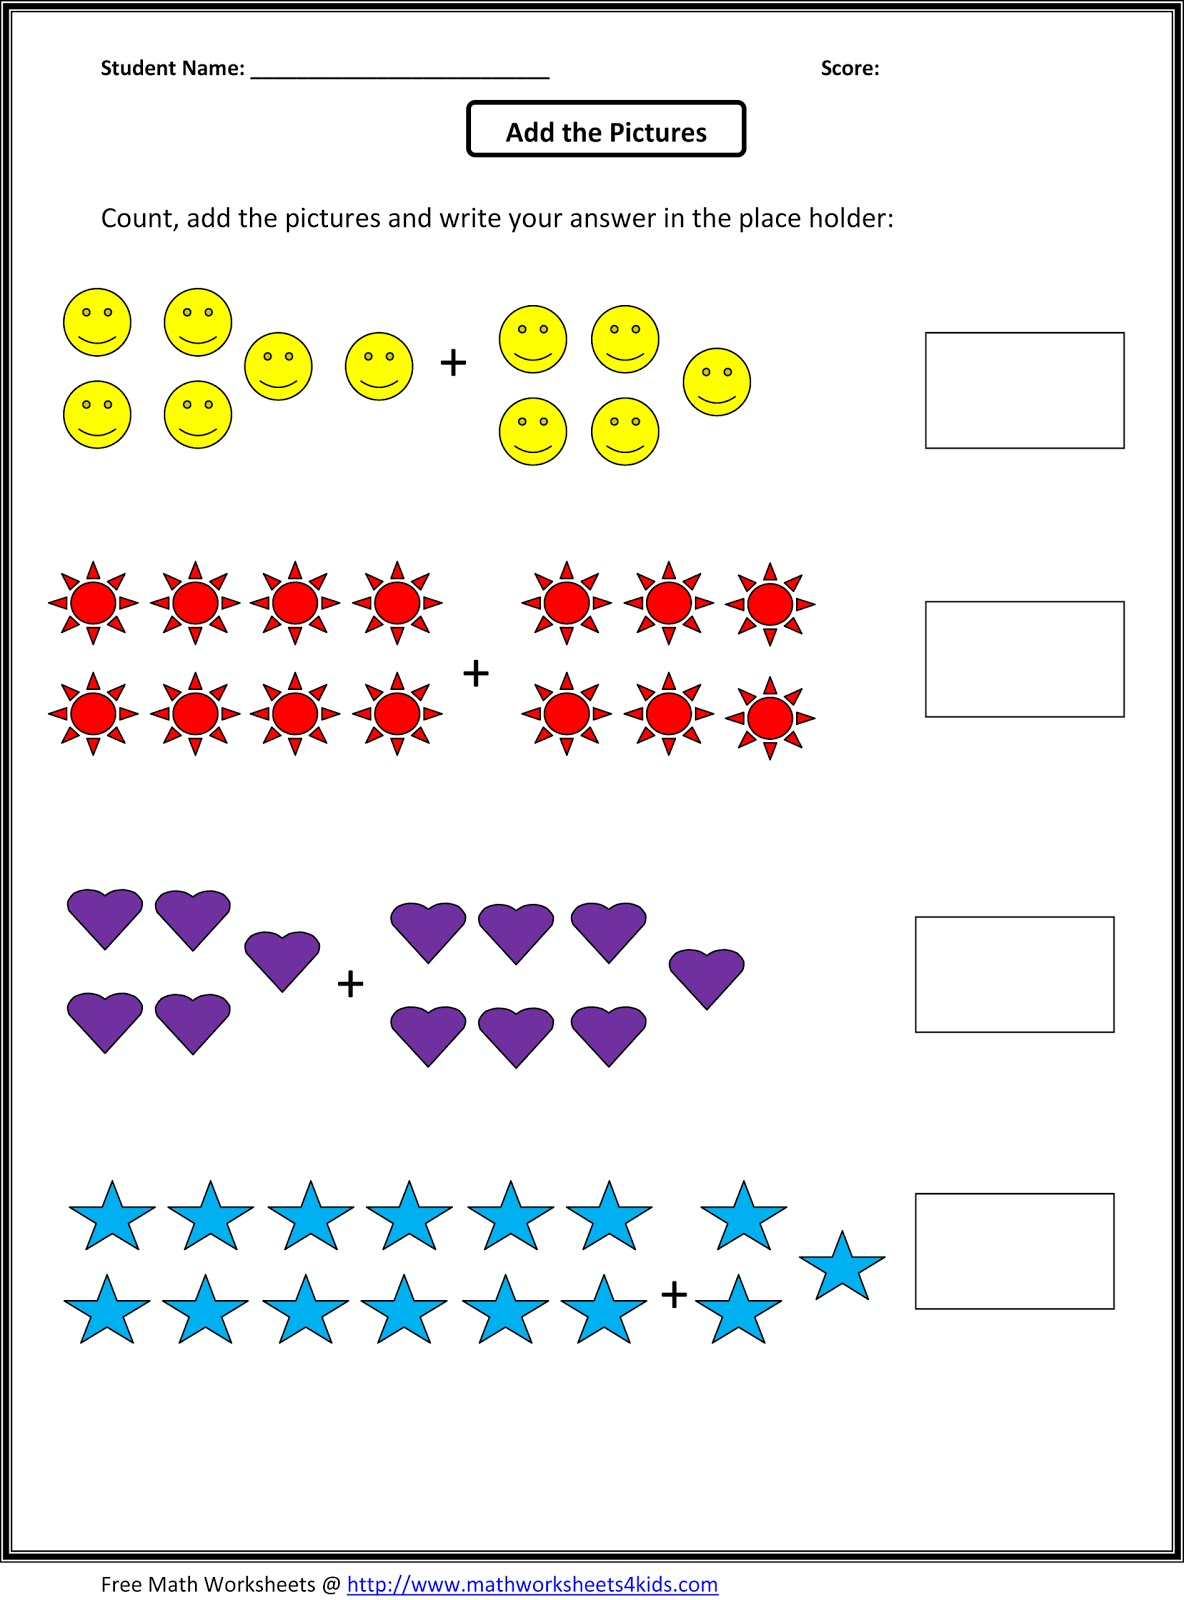 worksheet Free Math Worksheets For 1st Grade worksheet math sheets for 1st grade mikyu free one maths worksheets 1000 images about board